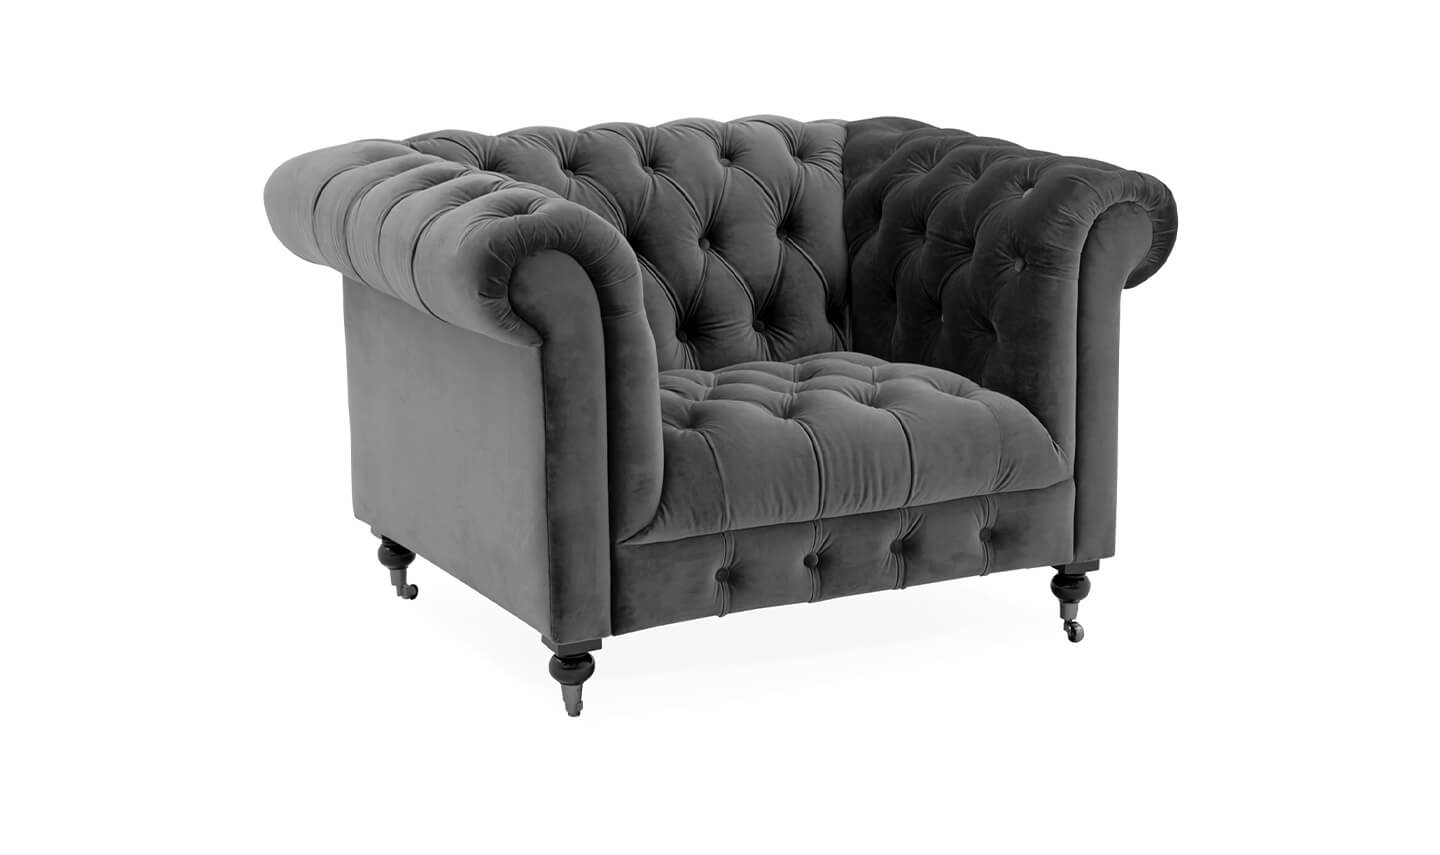 Darby 1 Seater Grey